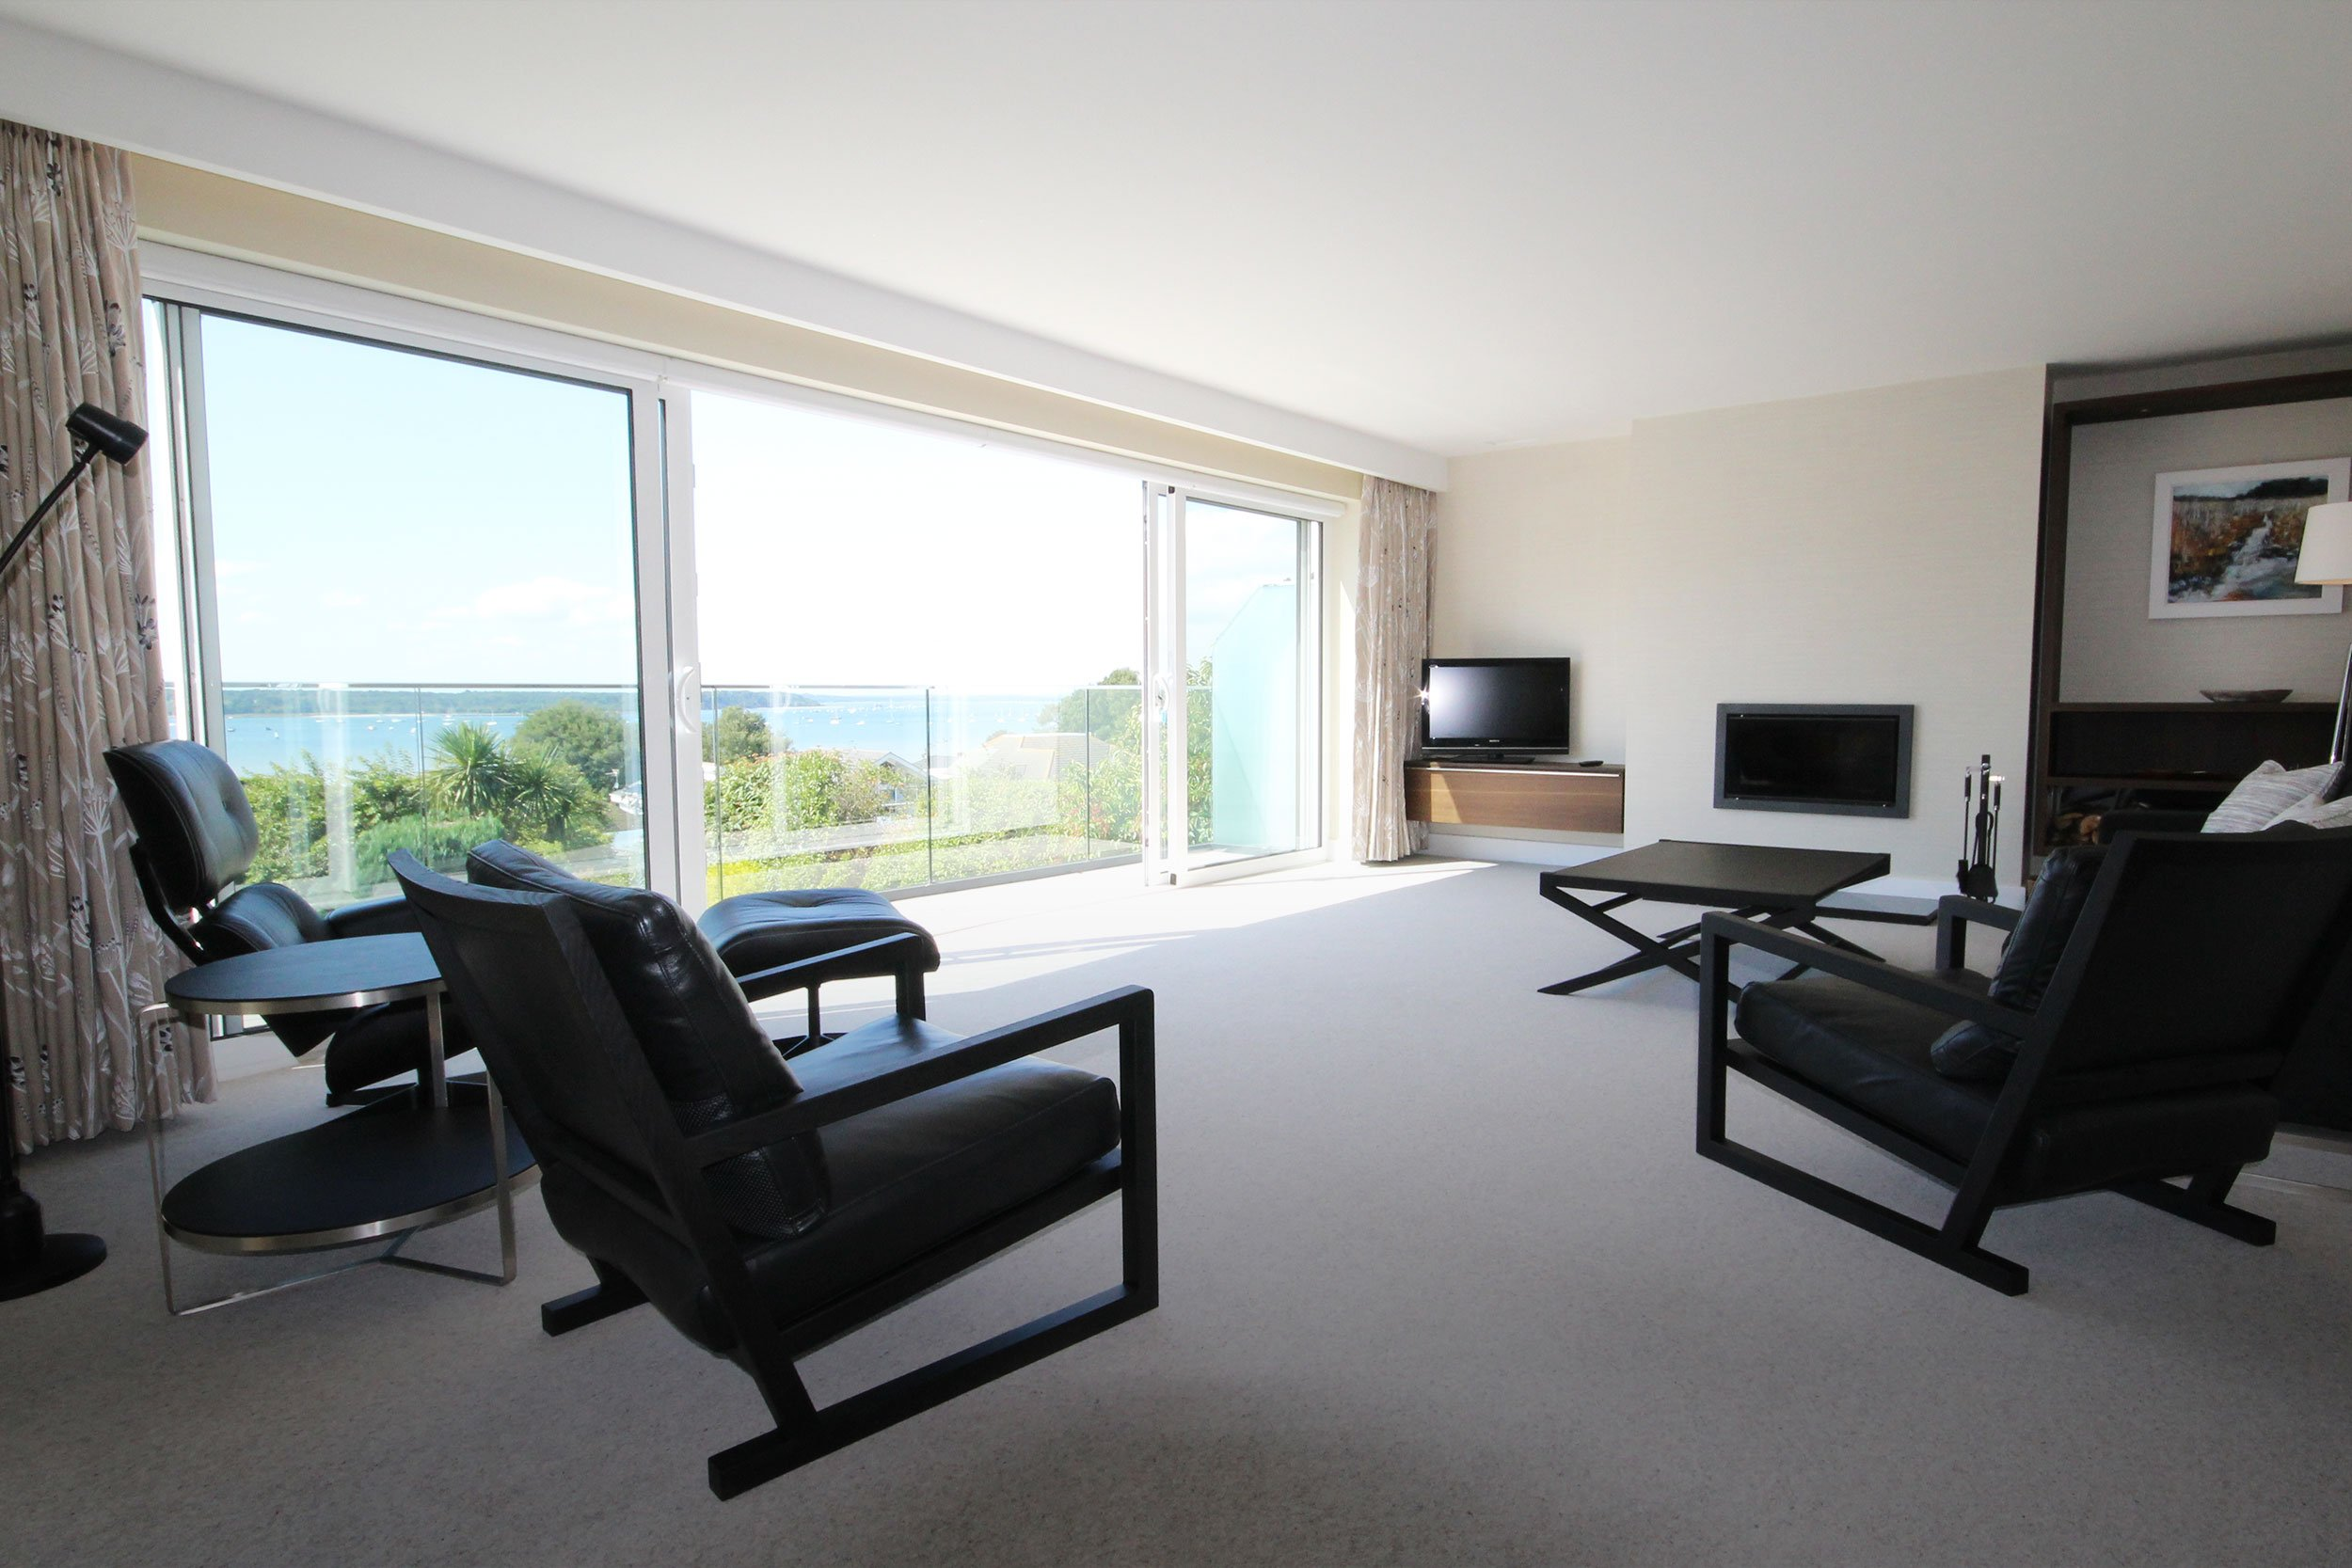 Modern living space leading to balcony with views of Sandbanks